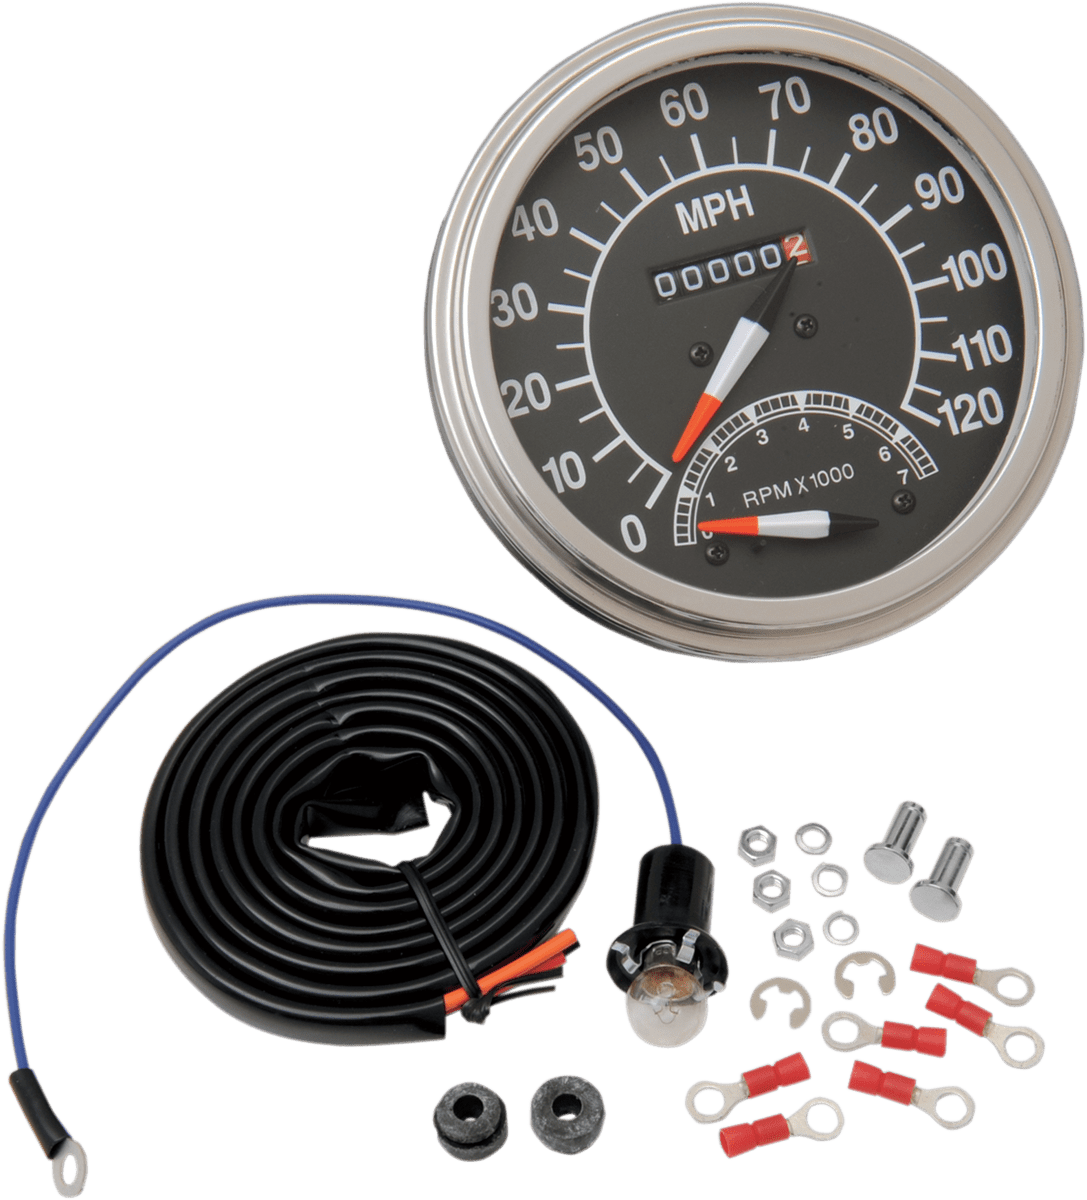 medium resolution of sunpro super tach 2 wiring diagram camaro wiring library rh 17 mac happen de sun tachometer wiring sun tachometer wiring diagram